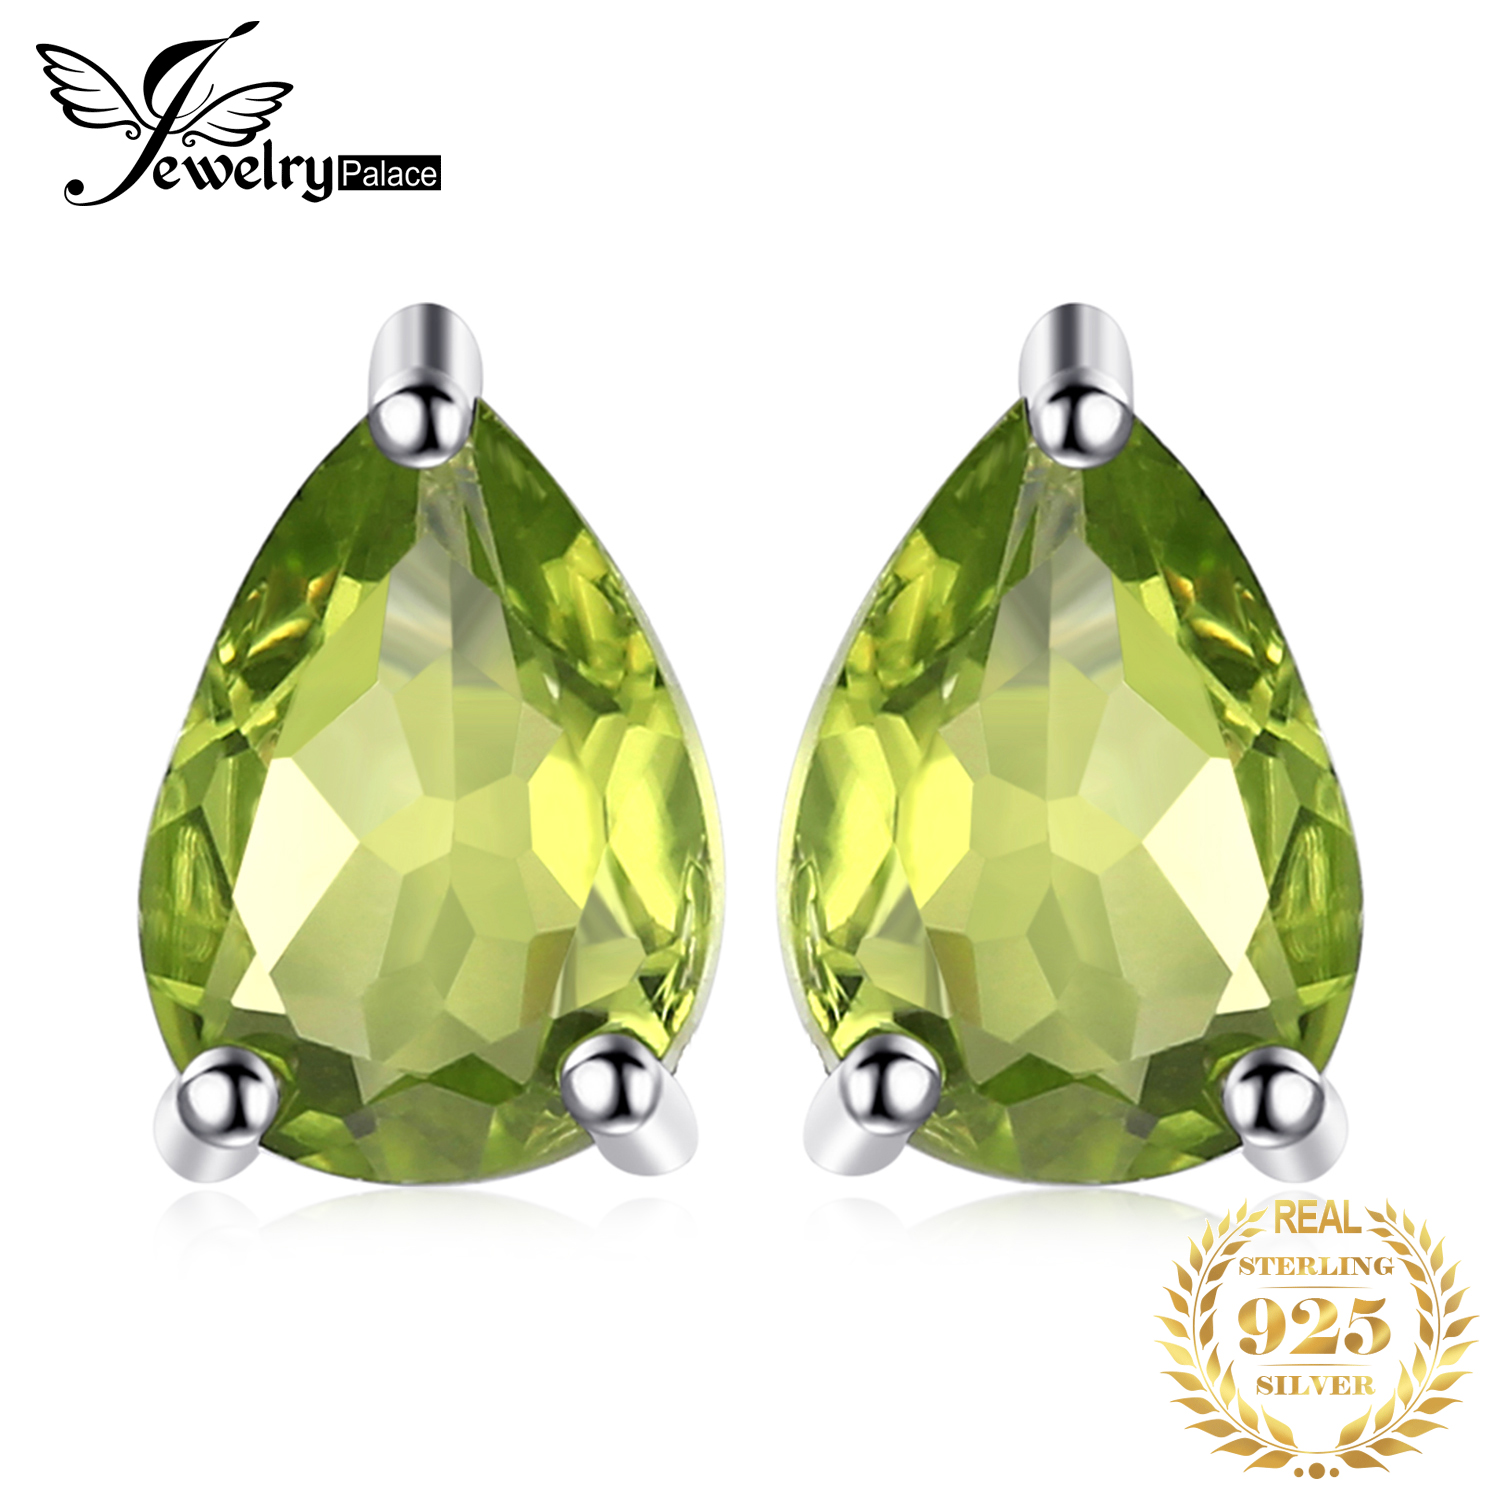 JewelryPalace Water Drop 1.6ct Natural Peridot Stud Earrings Real Pure 925 Sterling Silver Fashion Women Jewelry New Arrival